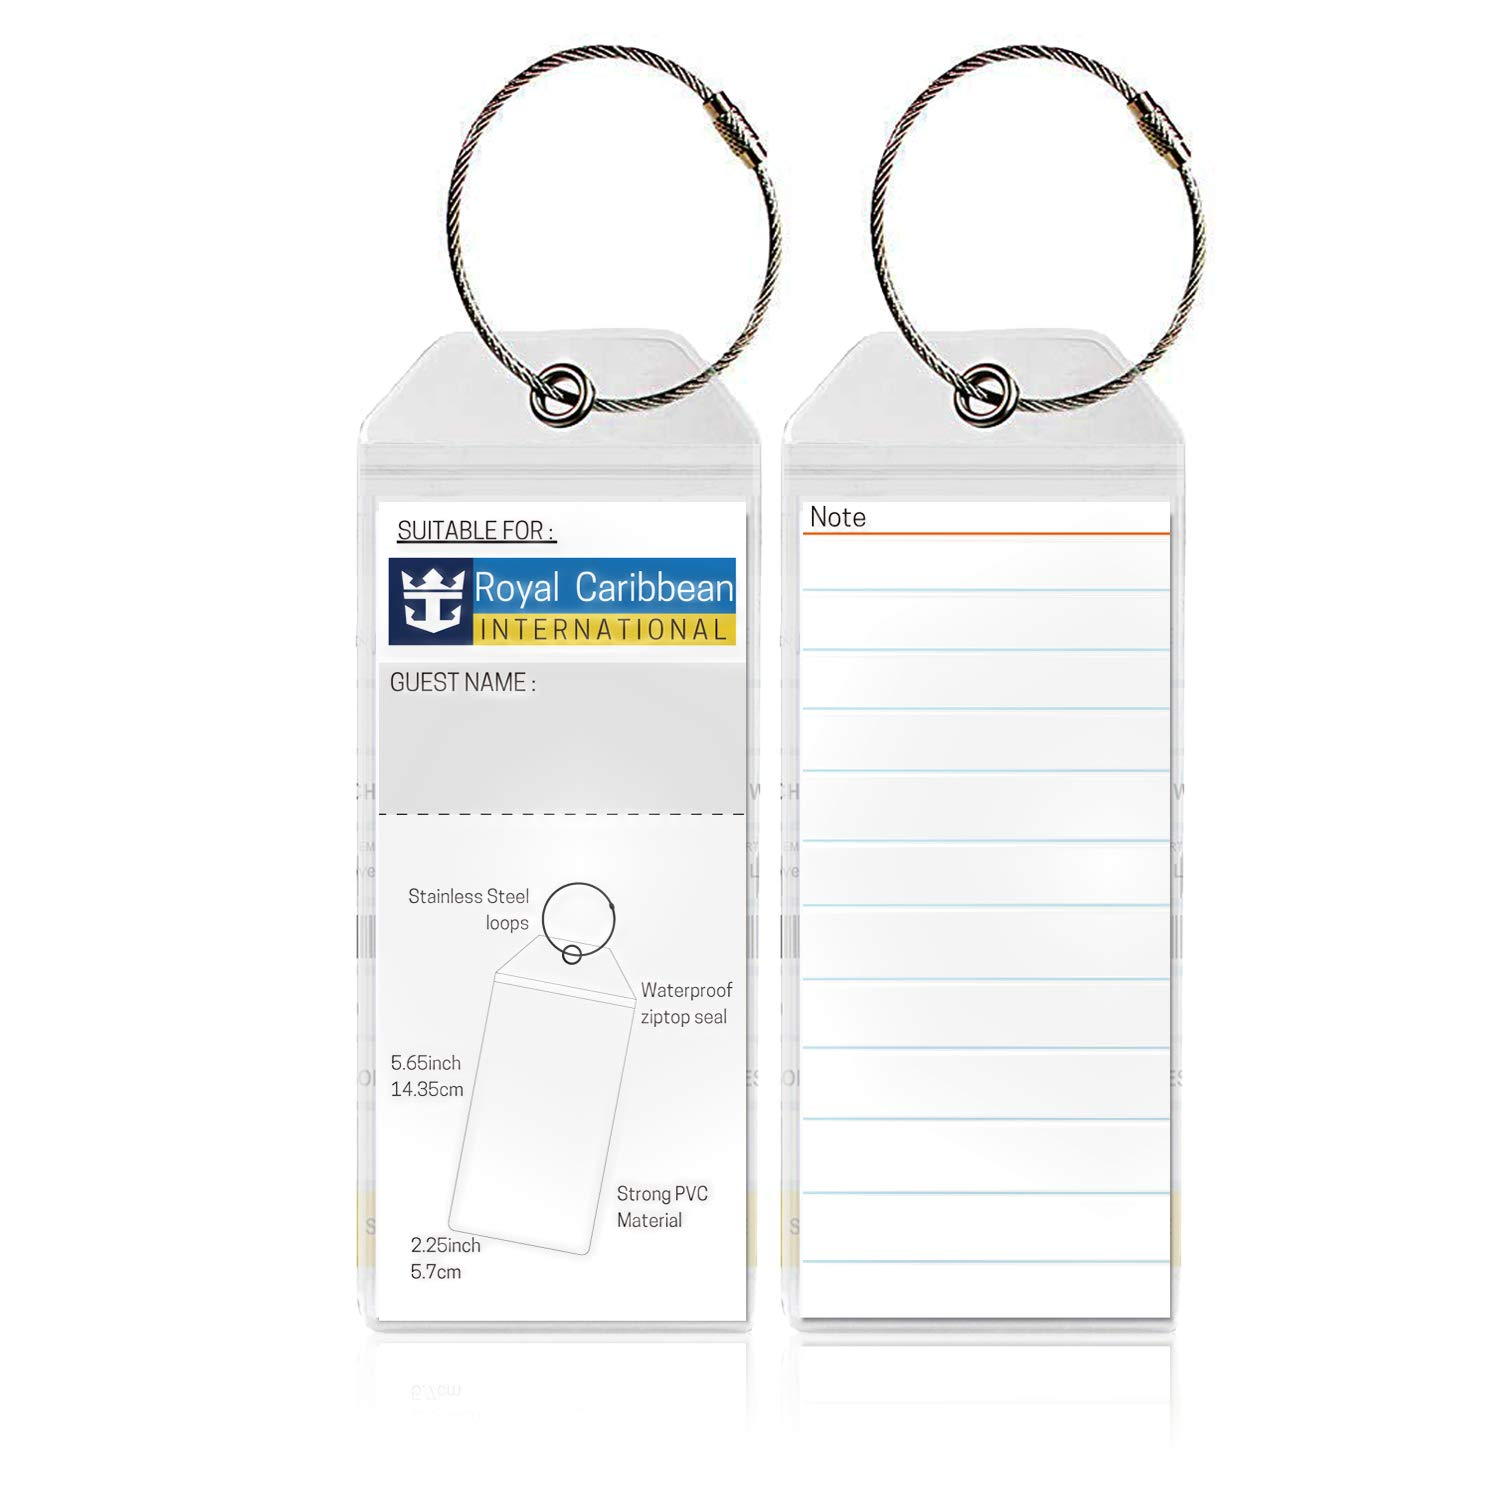 2 Pcs Cruise Tags 2//4//6//8 Pcs PVC Luggage Tags with Zip Seal/&Steel Loops for Cruise Ships